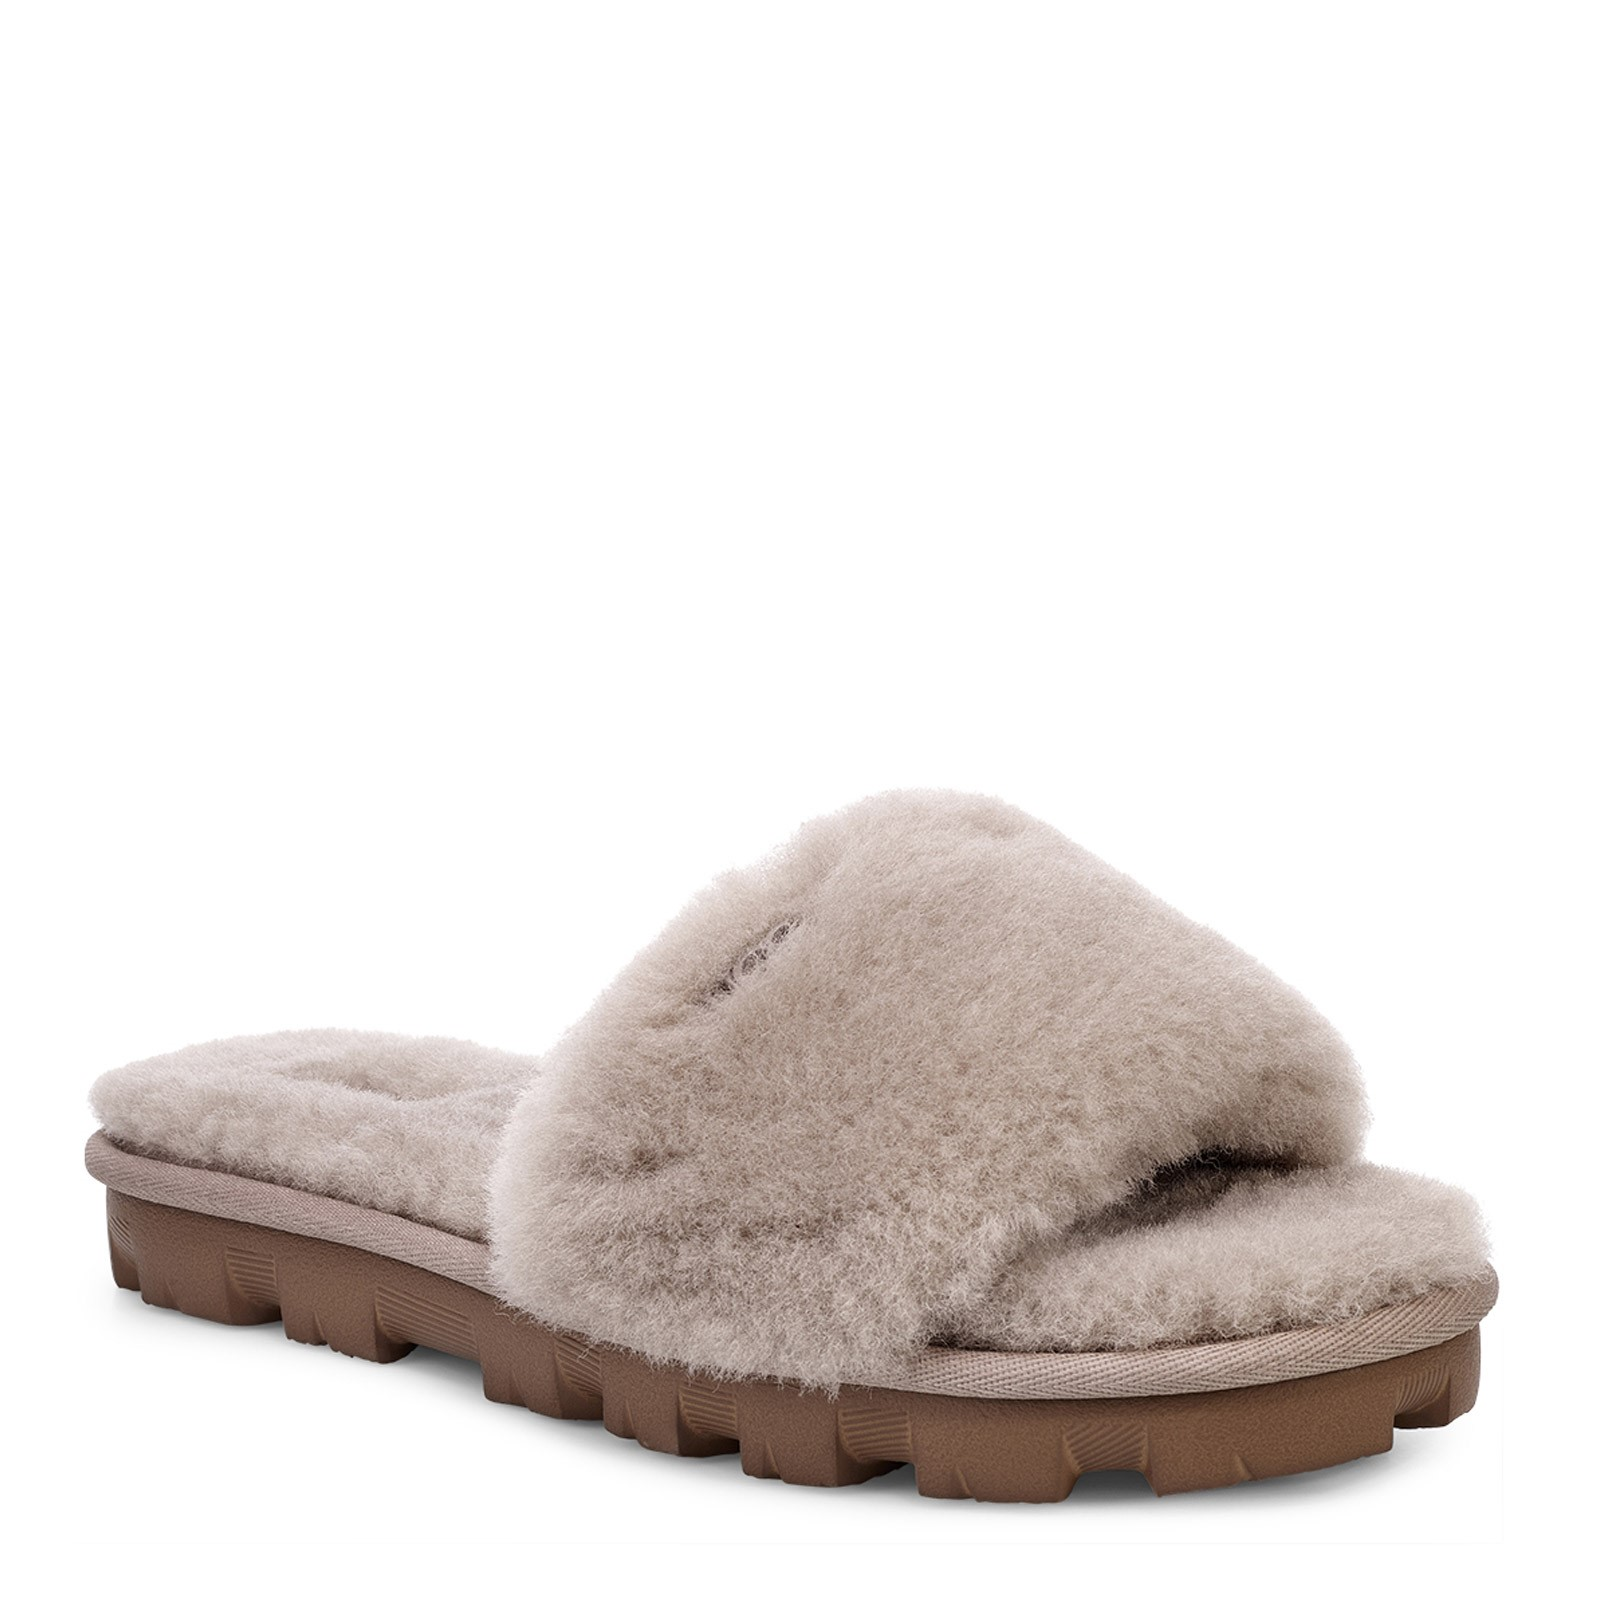 Women's Ugg, Cozette Slipper